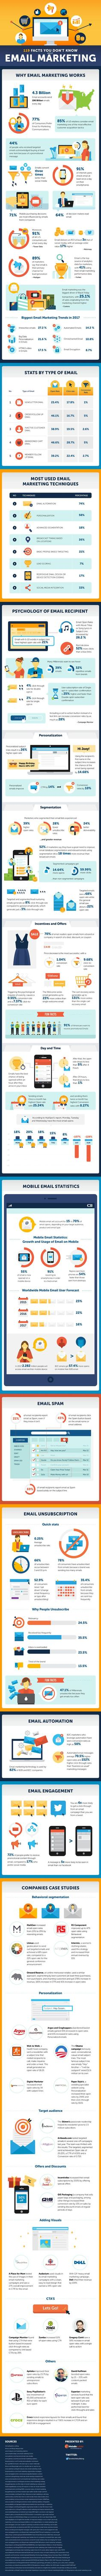 119 Stats, Facts, and Figures About Email Marketing | Infographic